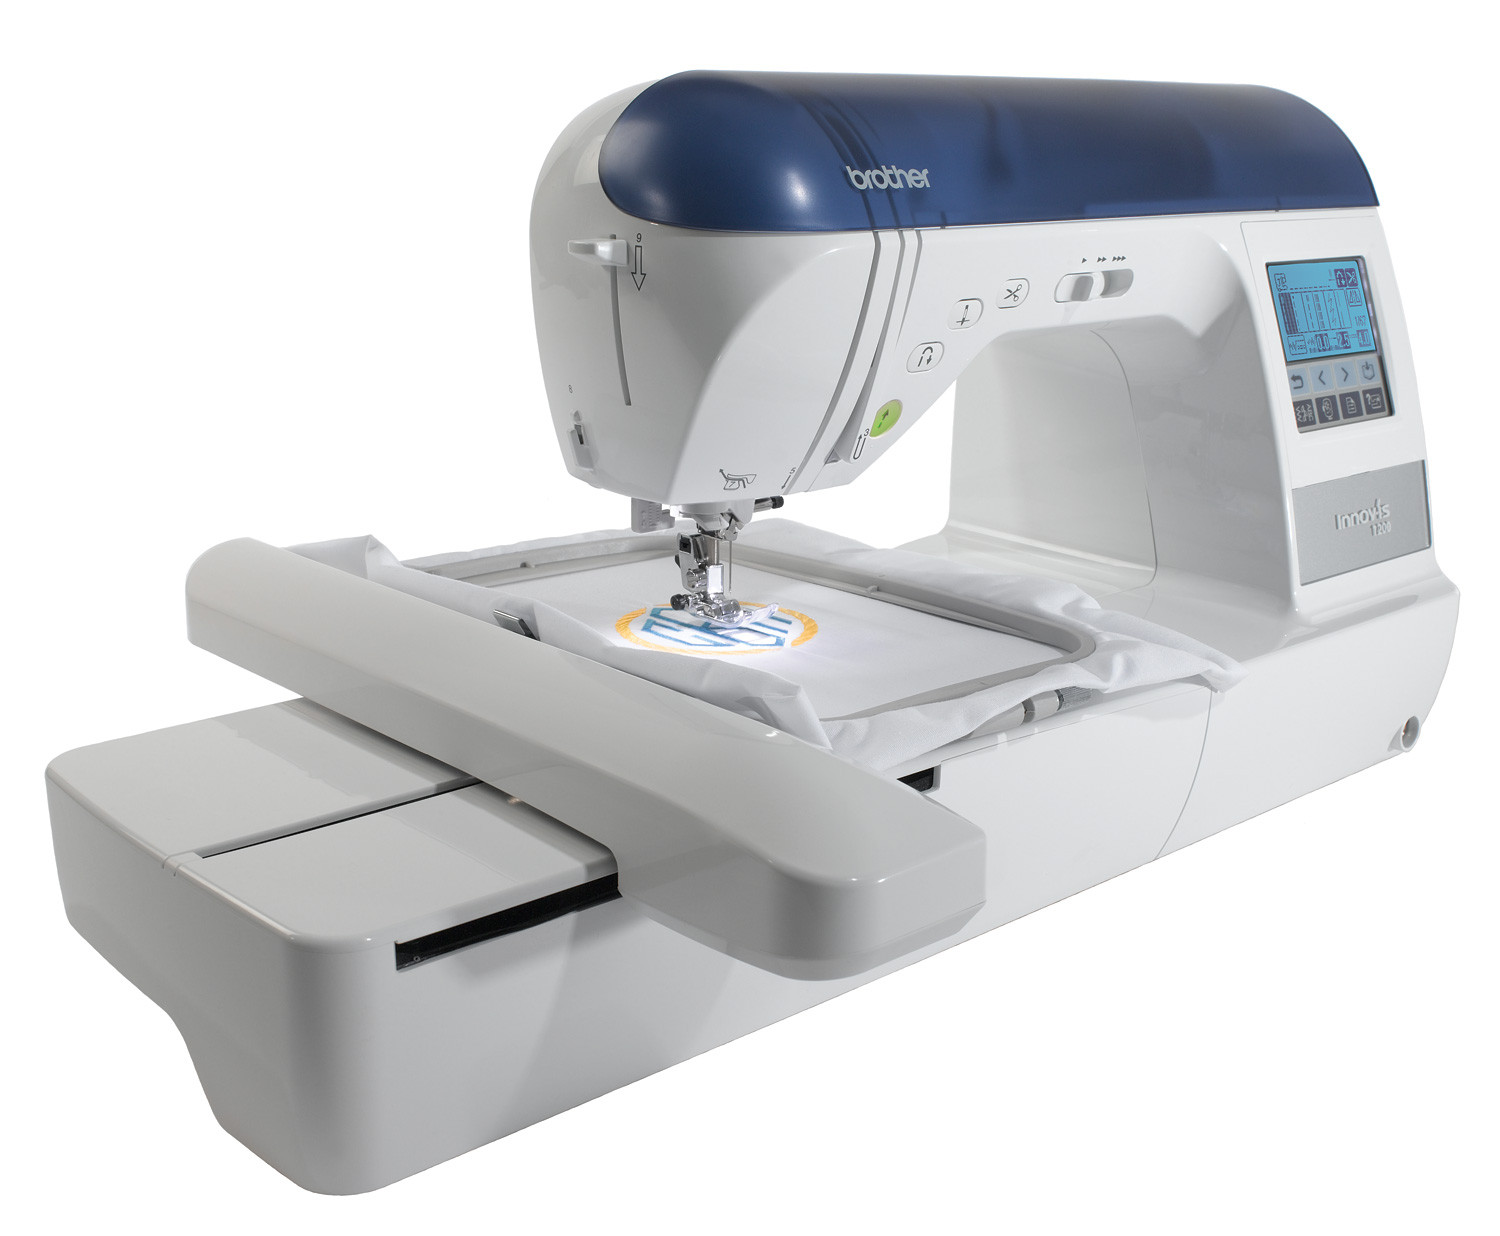 Embroidery Sewing Machine Inspirational Brother Innov is 1200 Sewing and Embroidery Machine Of Wonderful 40 Images Embroidery Sewing Machine